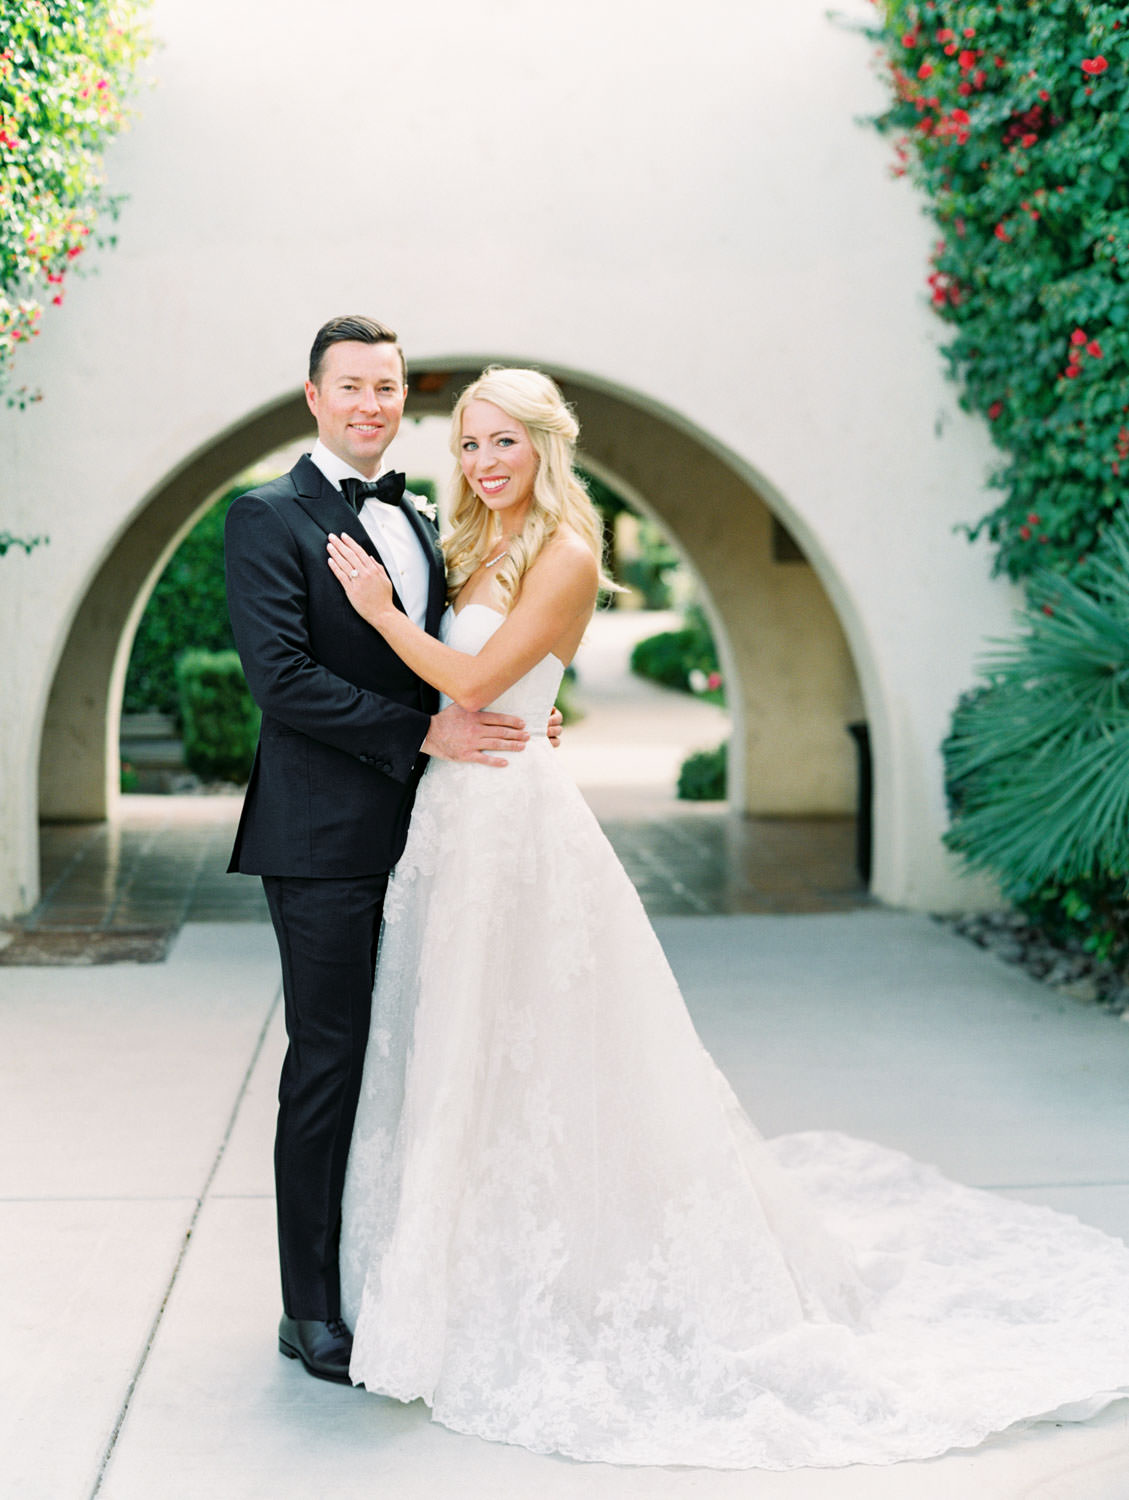 Bride and groom smiling at the camera. Bride in lace Watters sweetheart gown. Groom in classic black tuxedo with single white rose for boutonniere. Miramonte Resort wedding. Film photography by Cavin Elizabeth.